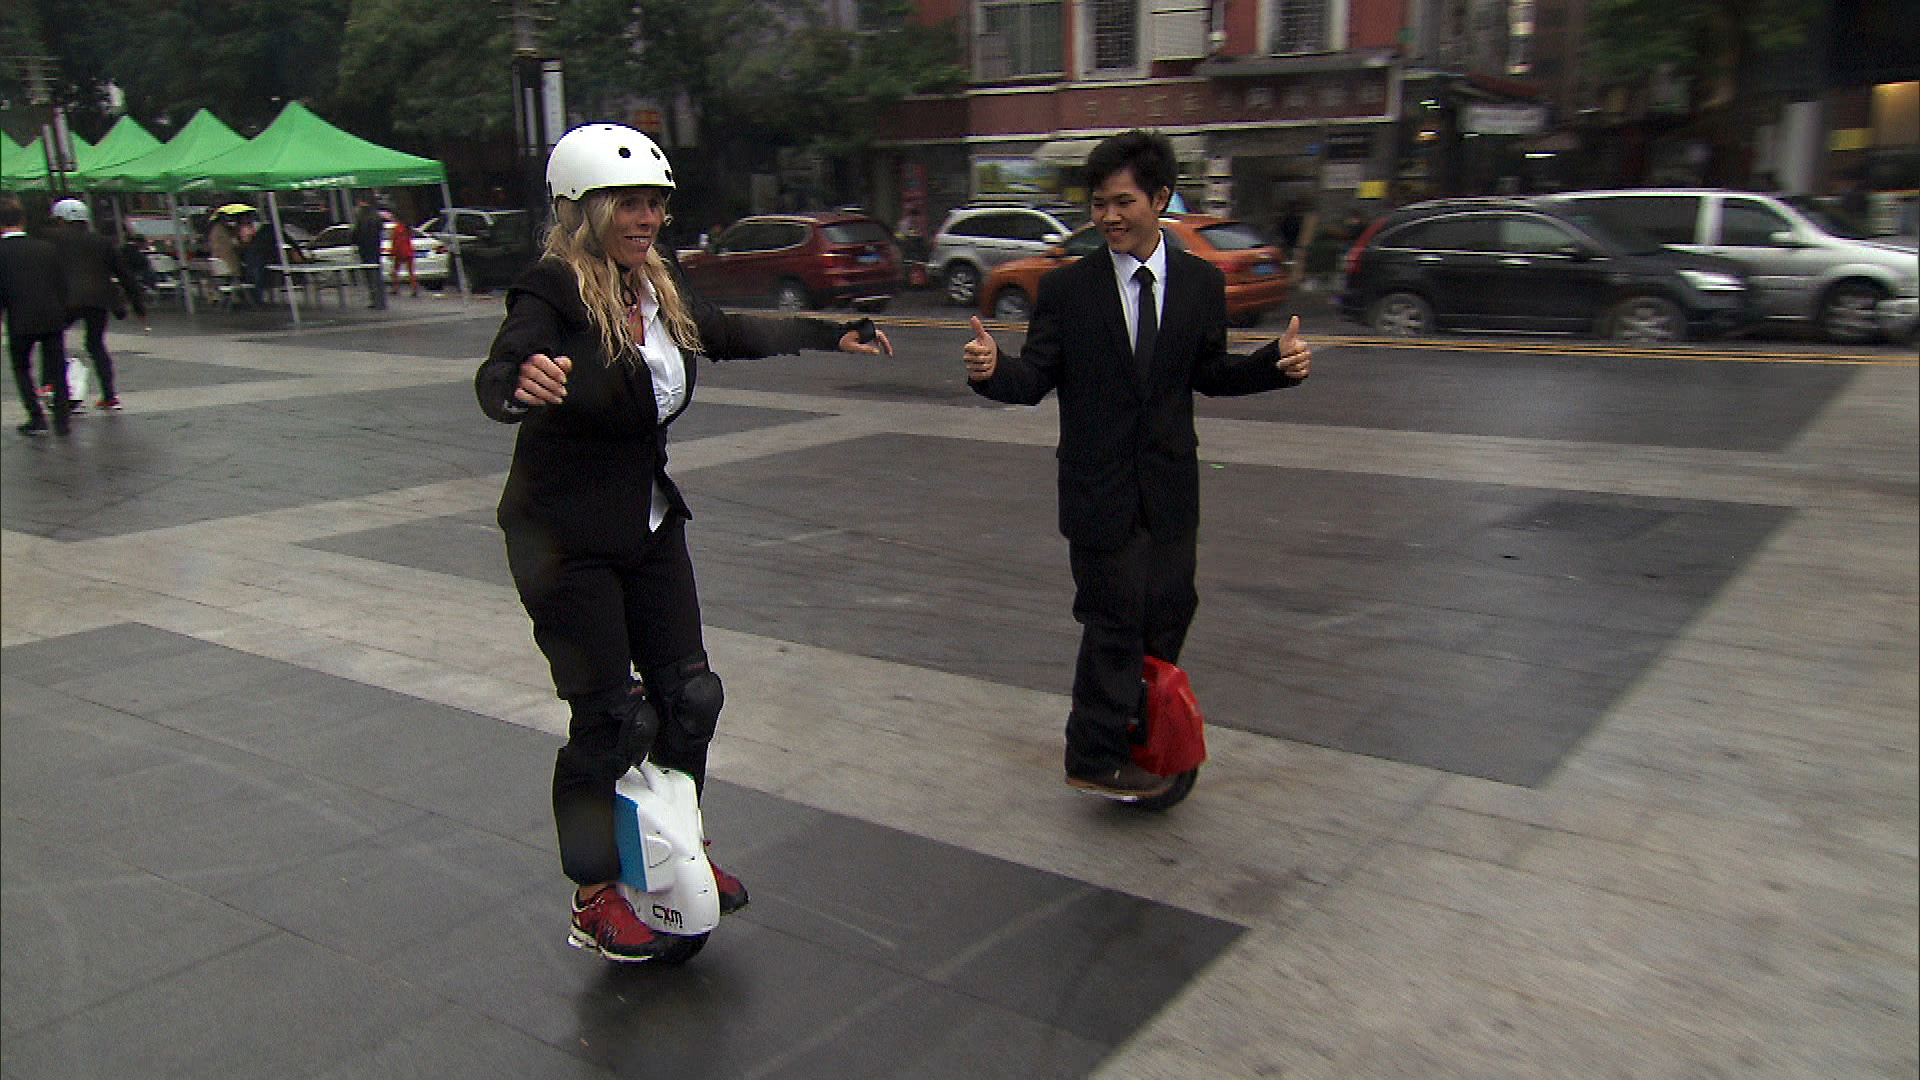 In Detour A, Sheri must ride a commuter cycle in business attire.